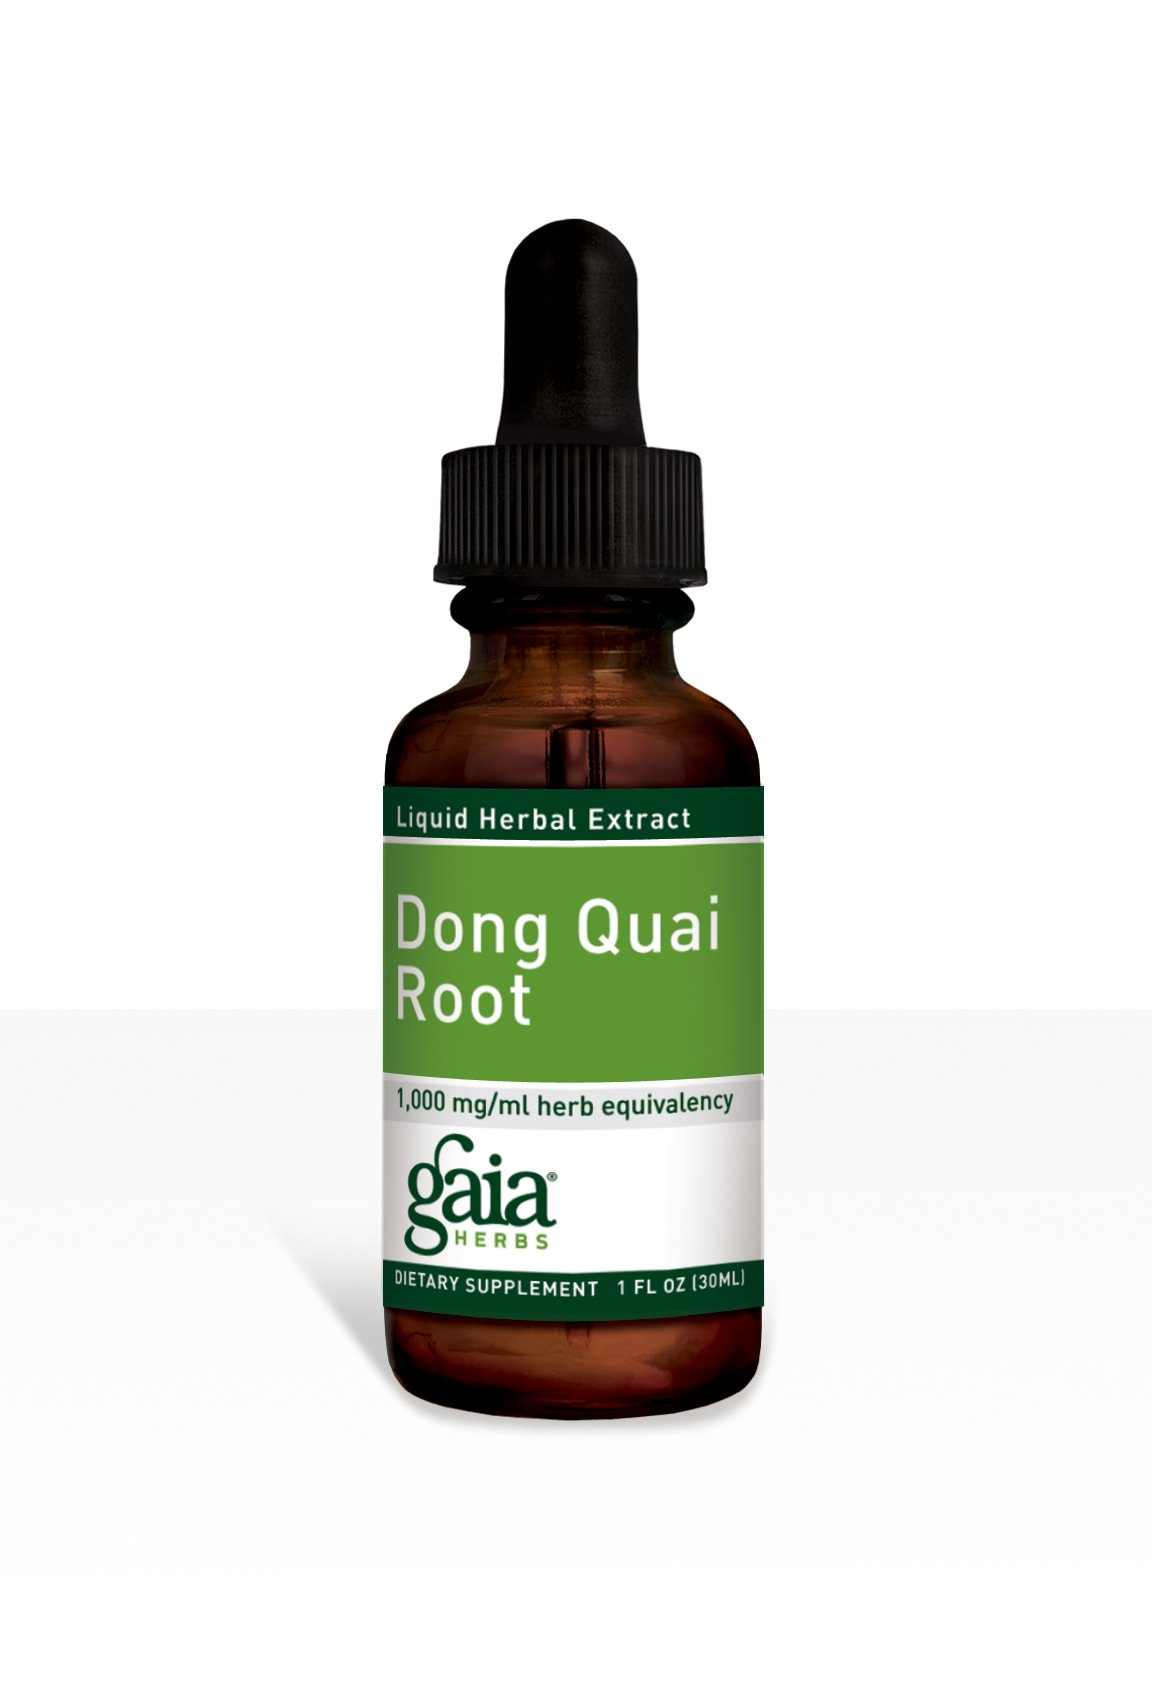 Gaia Herbs Dong Quai Root, Liquid Herbal Extract, 1 Ounce (Pack of 2) - Female Reproductive Support